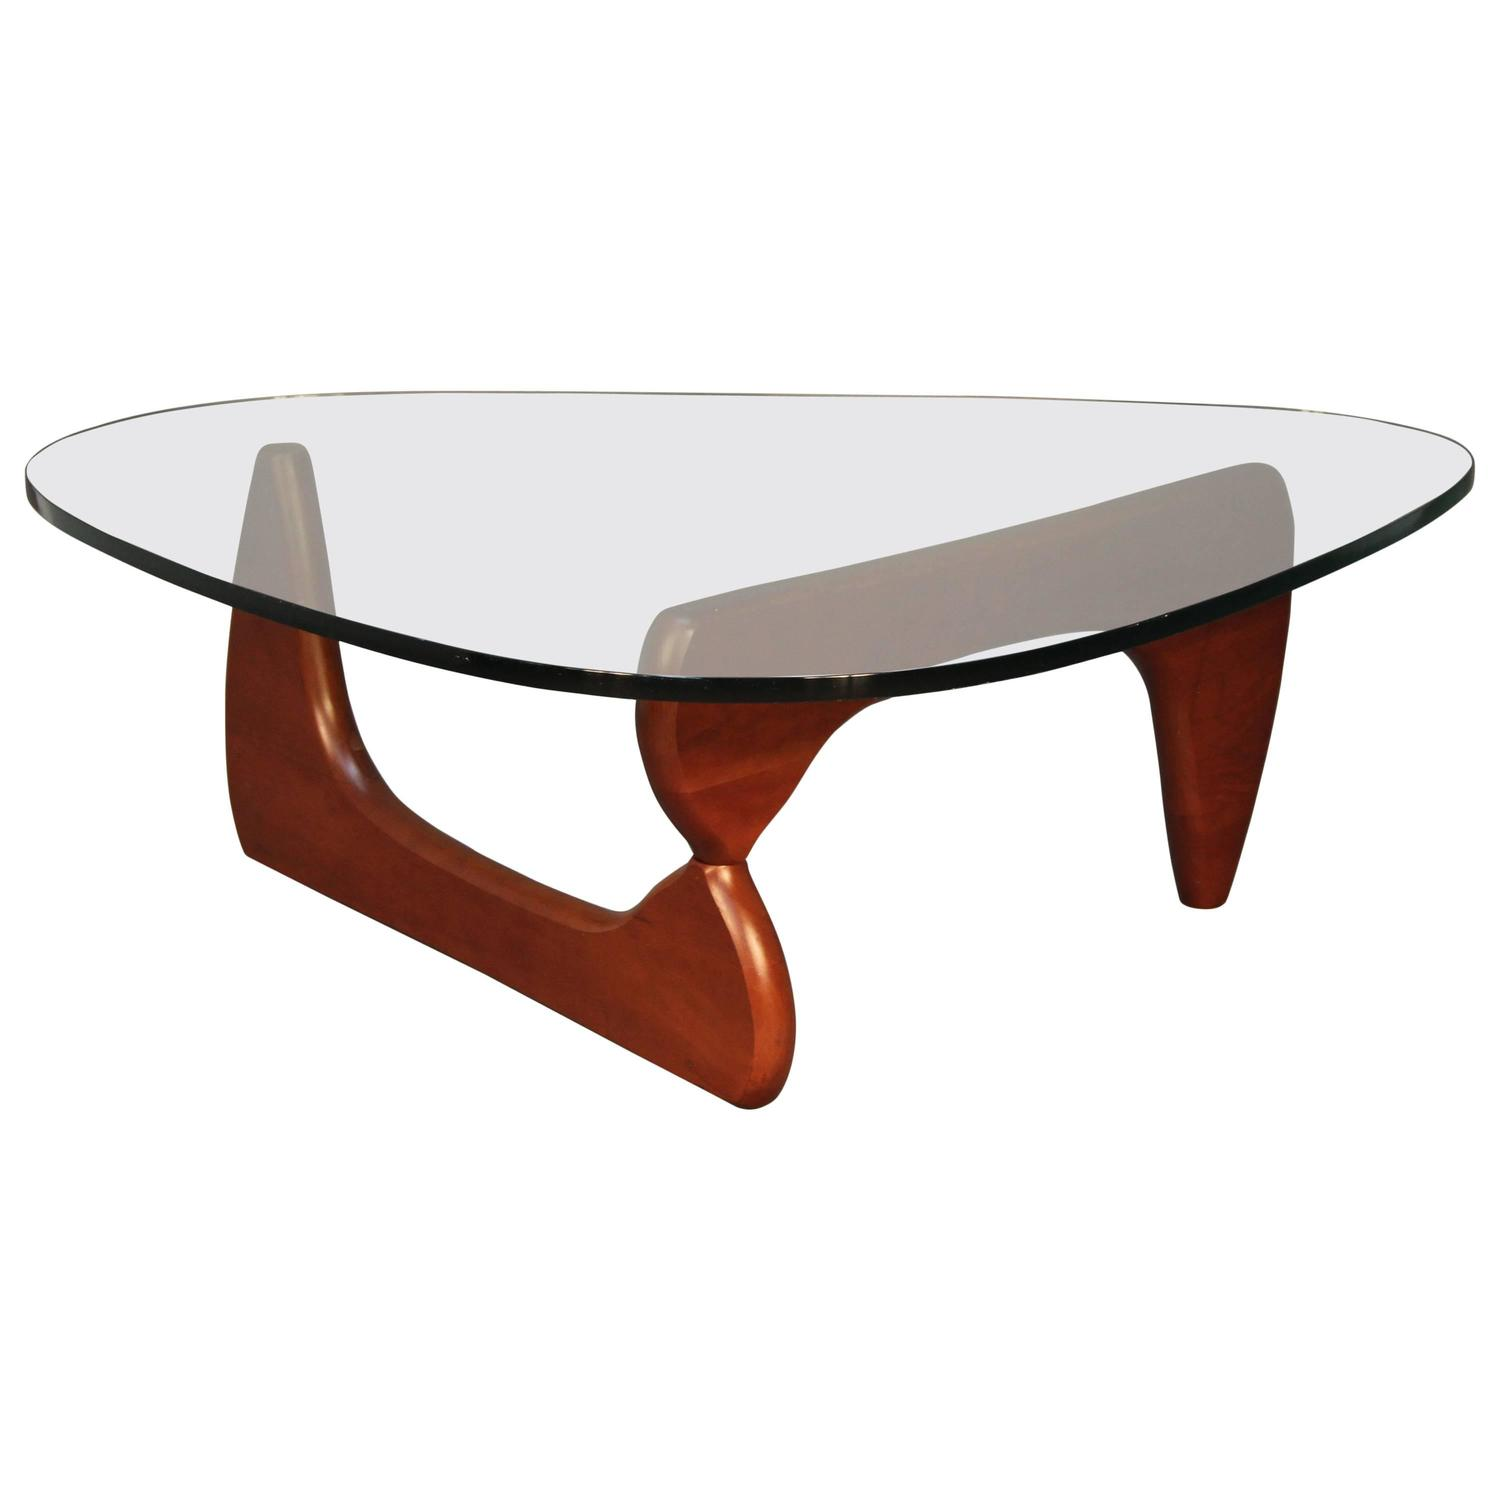 Isamu noguchi sculptural coffee table at 1stdibs for Table table table